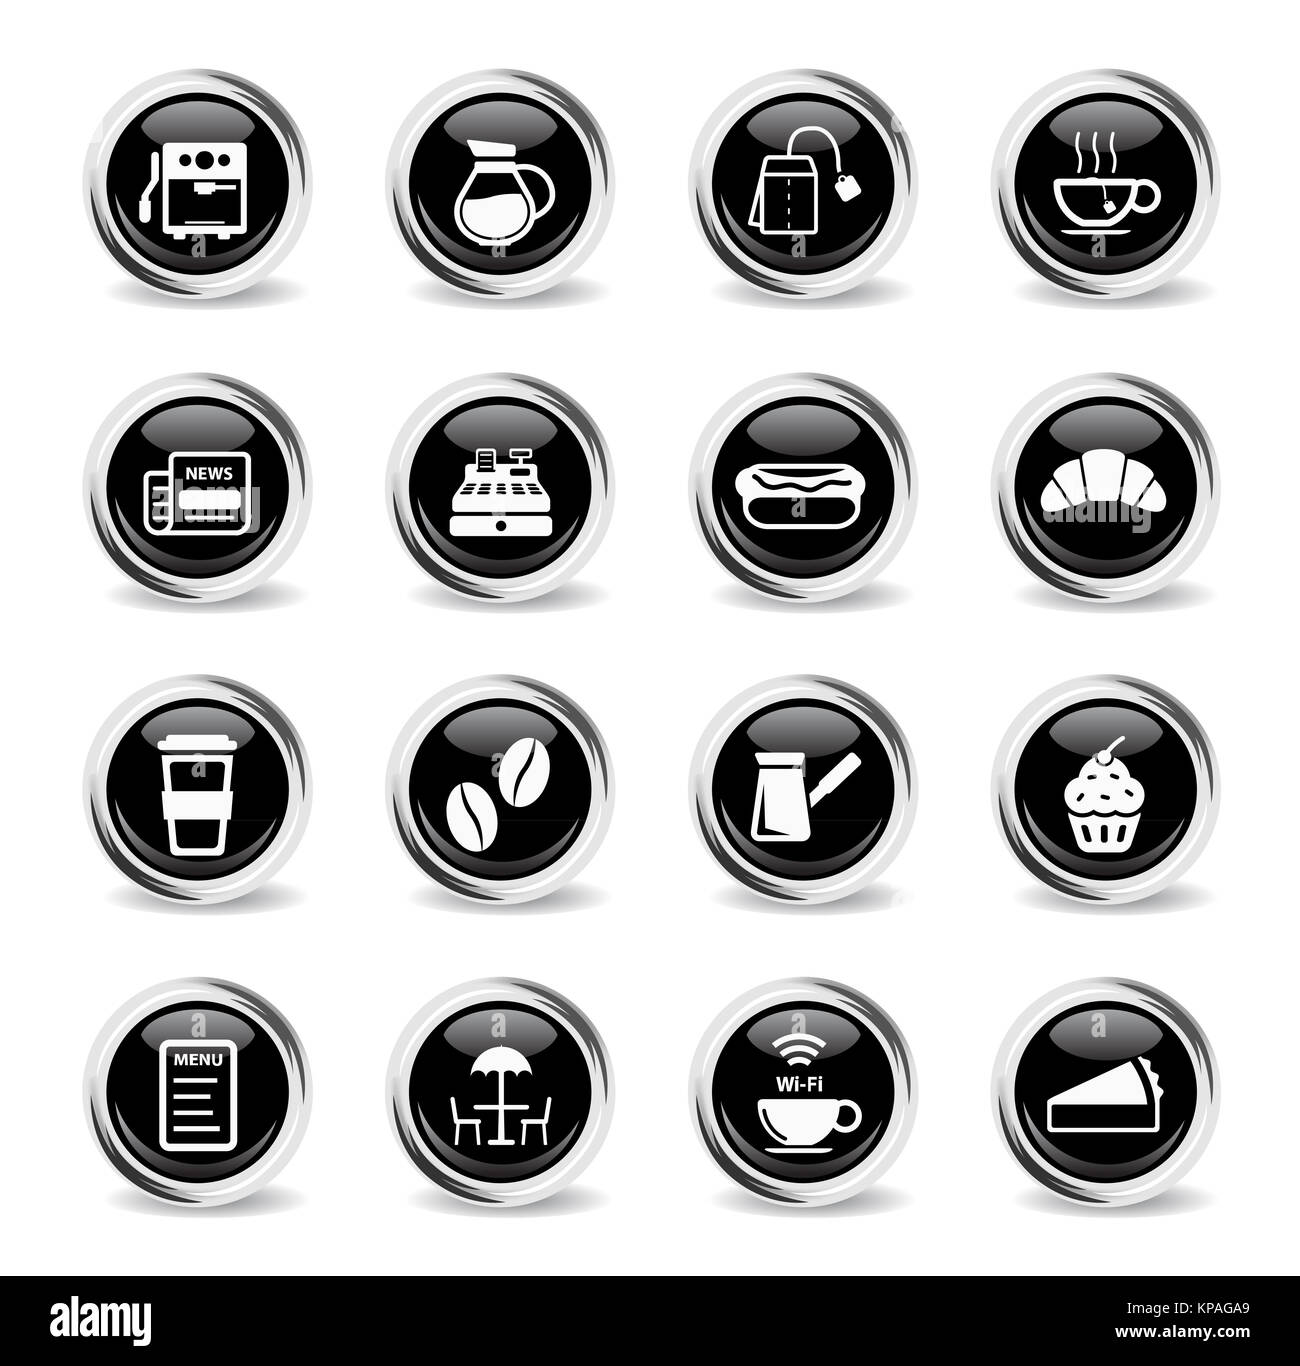 Cafe simply icons - Stock Image